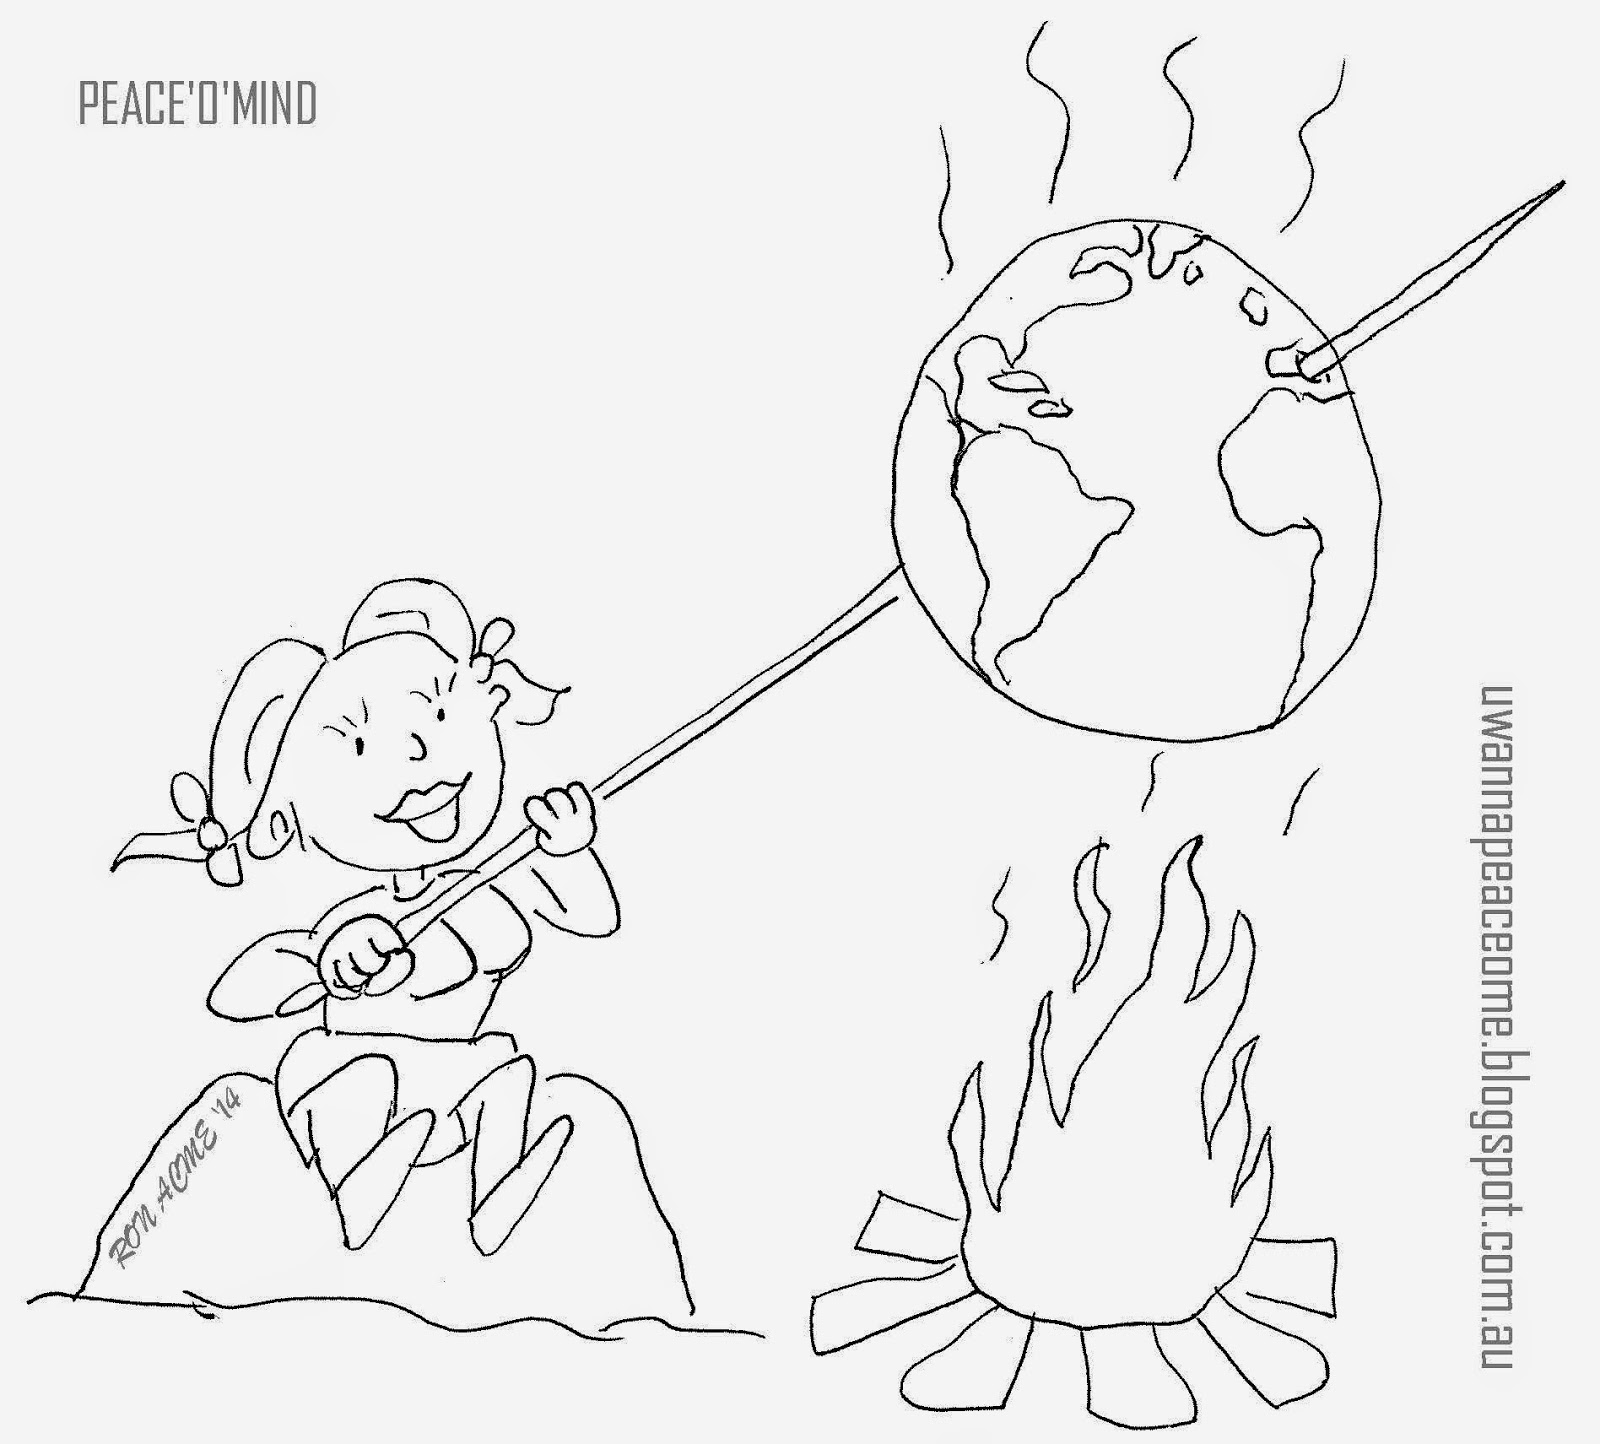 1600x1444 Ronnie Peace's Peace'O'Mind Man Made Global Warming, And Other